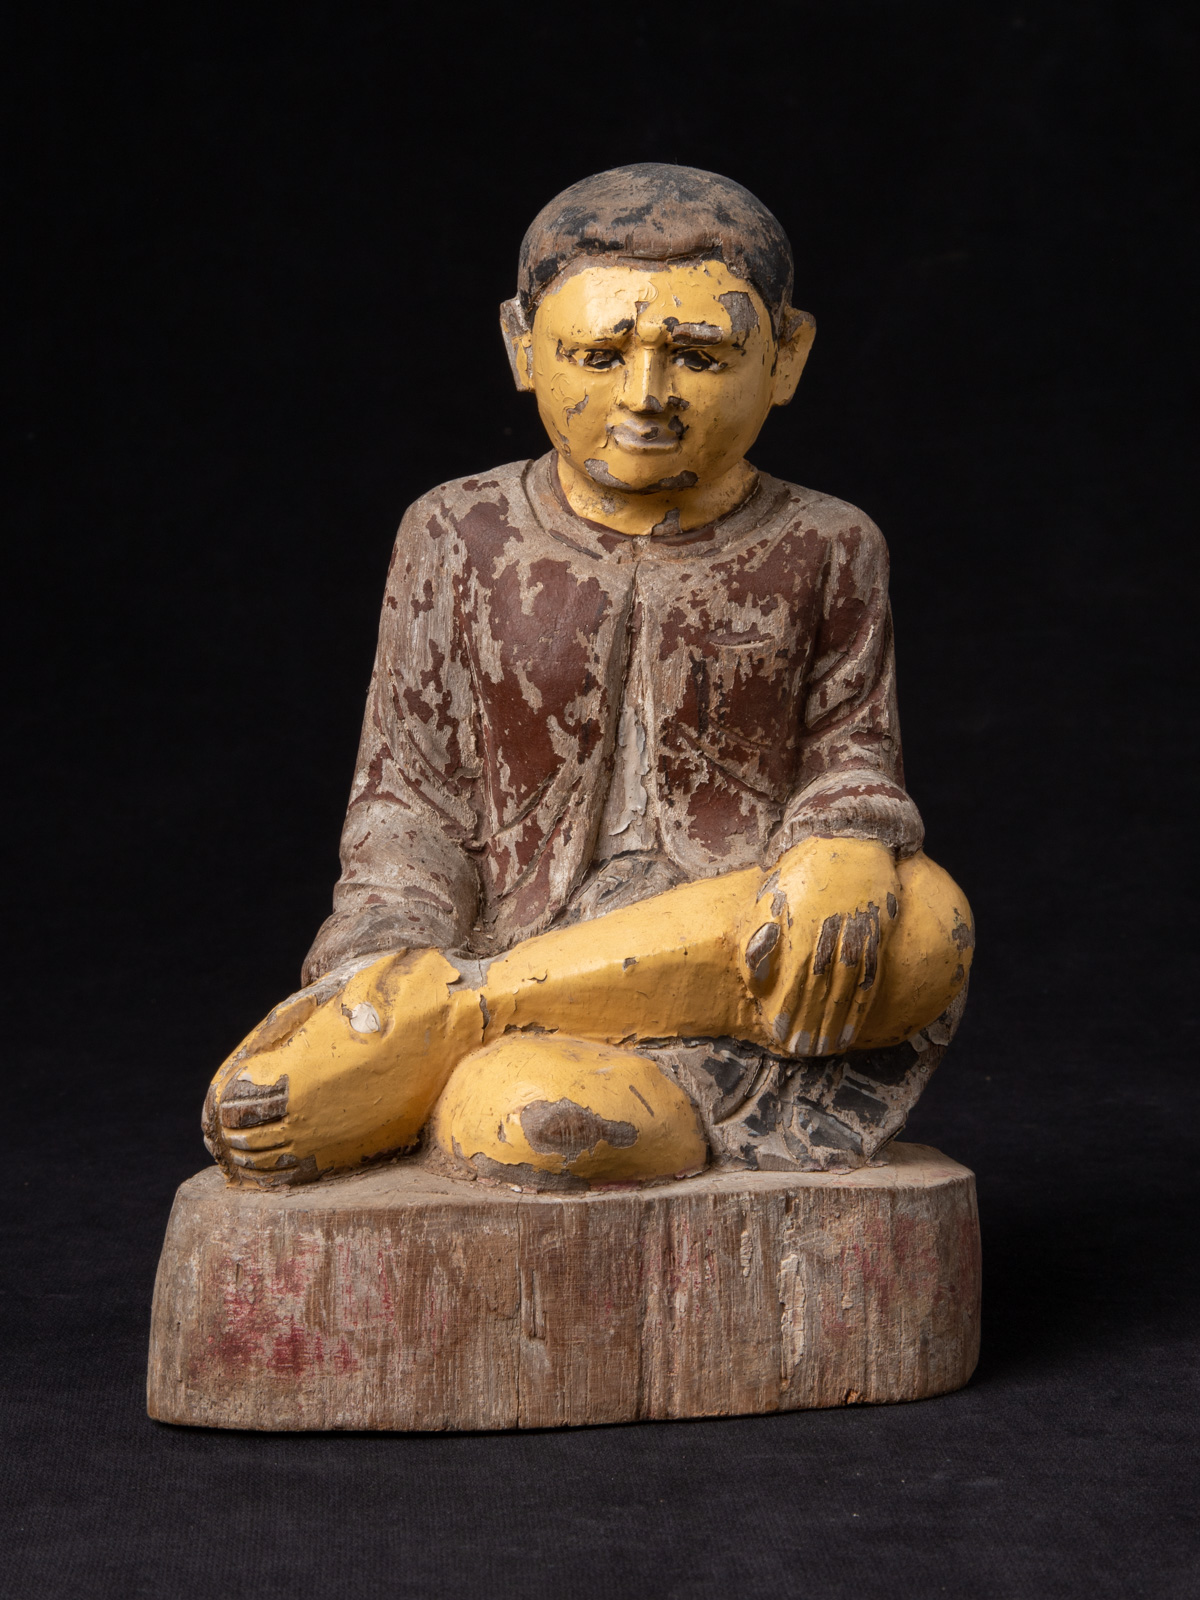 Old wooden Burmese monk statue from Burma